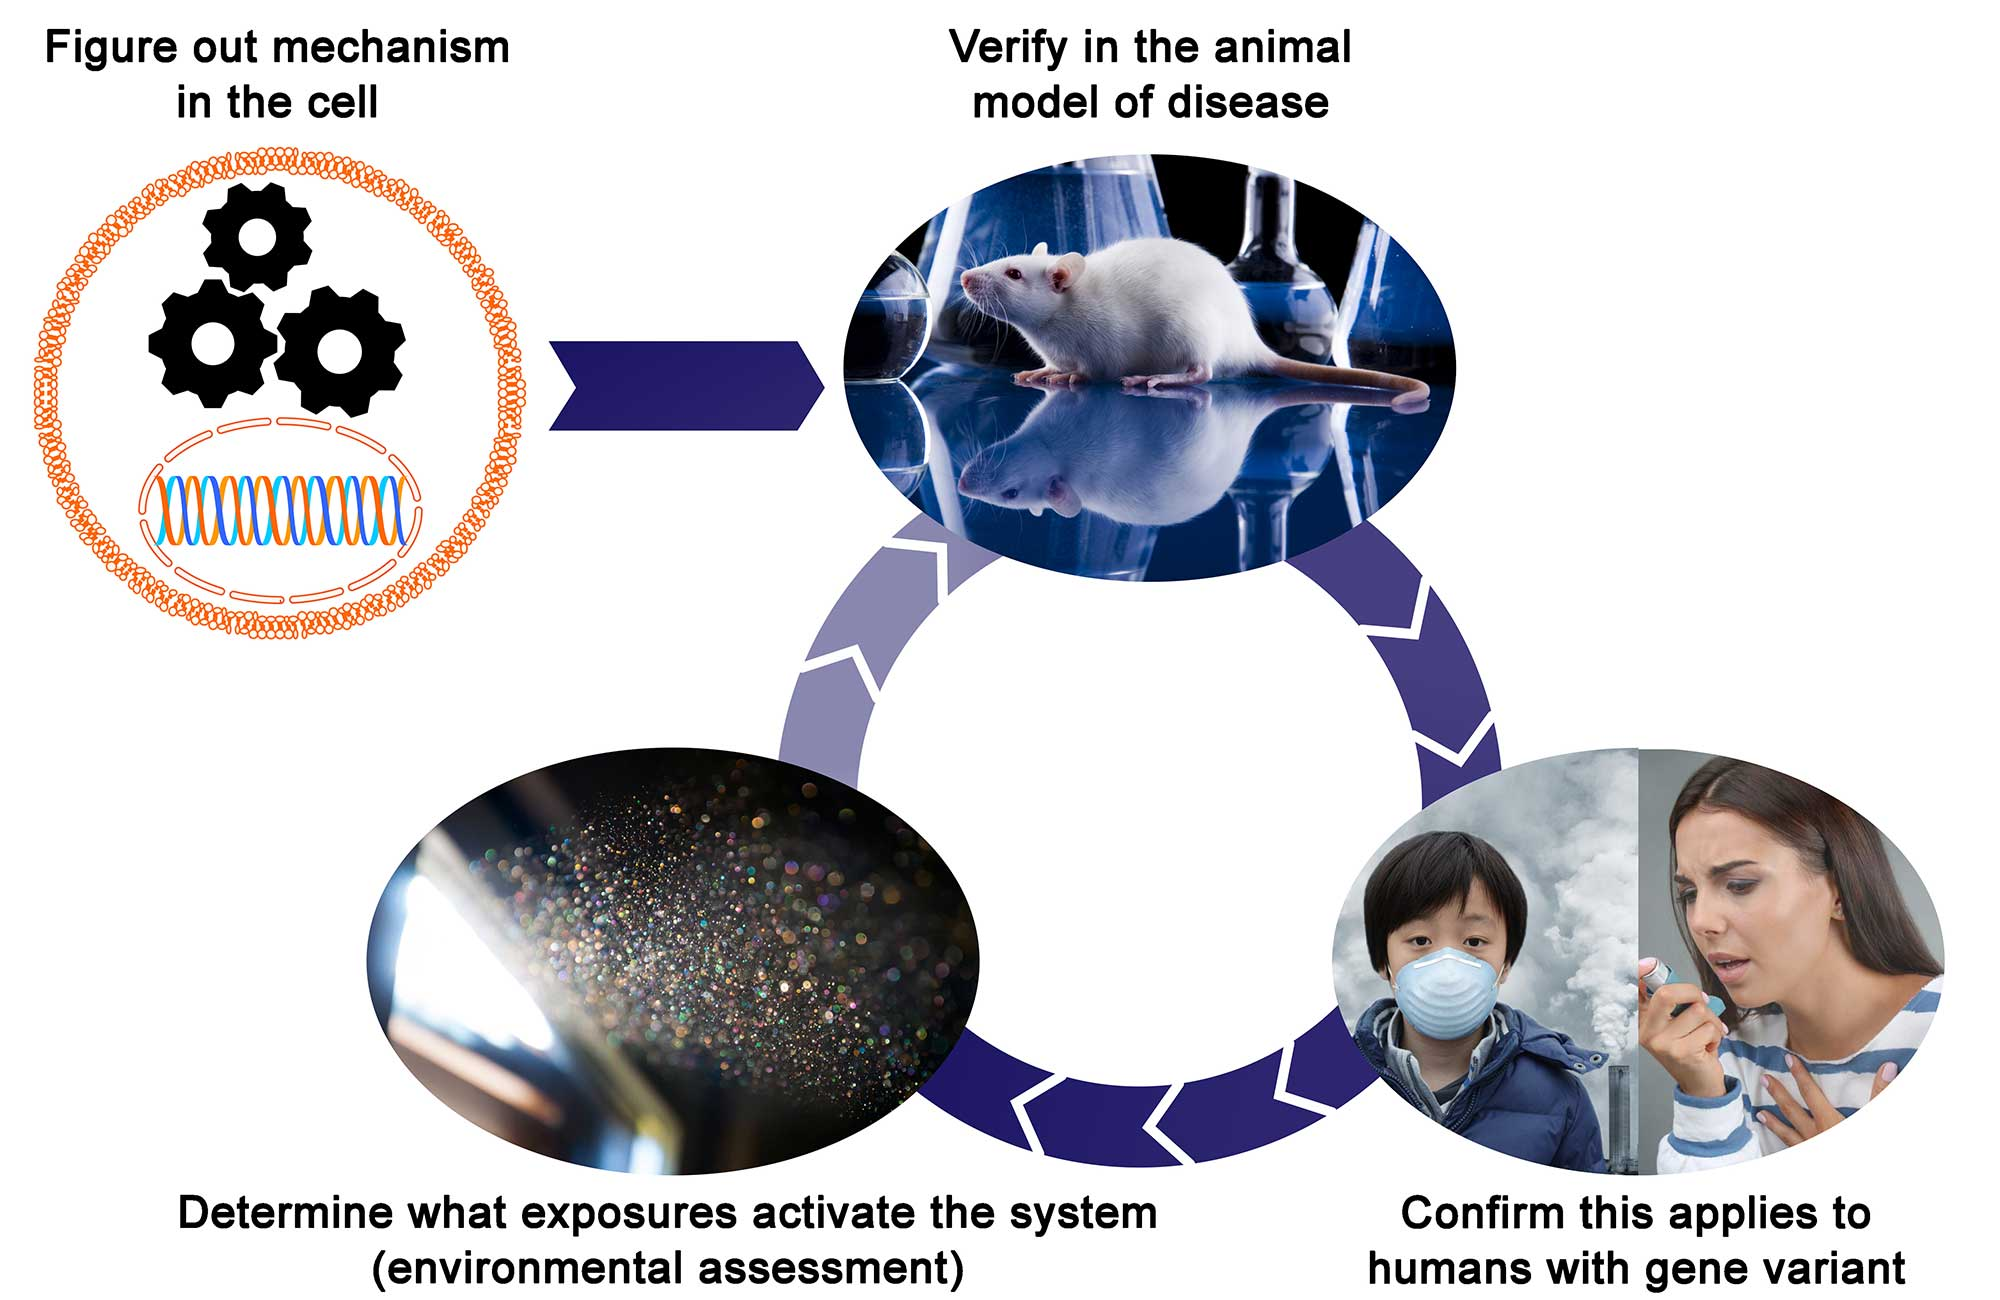 Figure out mechanism in the cell, Verify in the animal model of disease, Determine what exposures activate the system (environmental assessment), Confirm this applies to the humans with gene variant